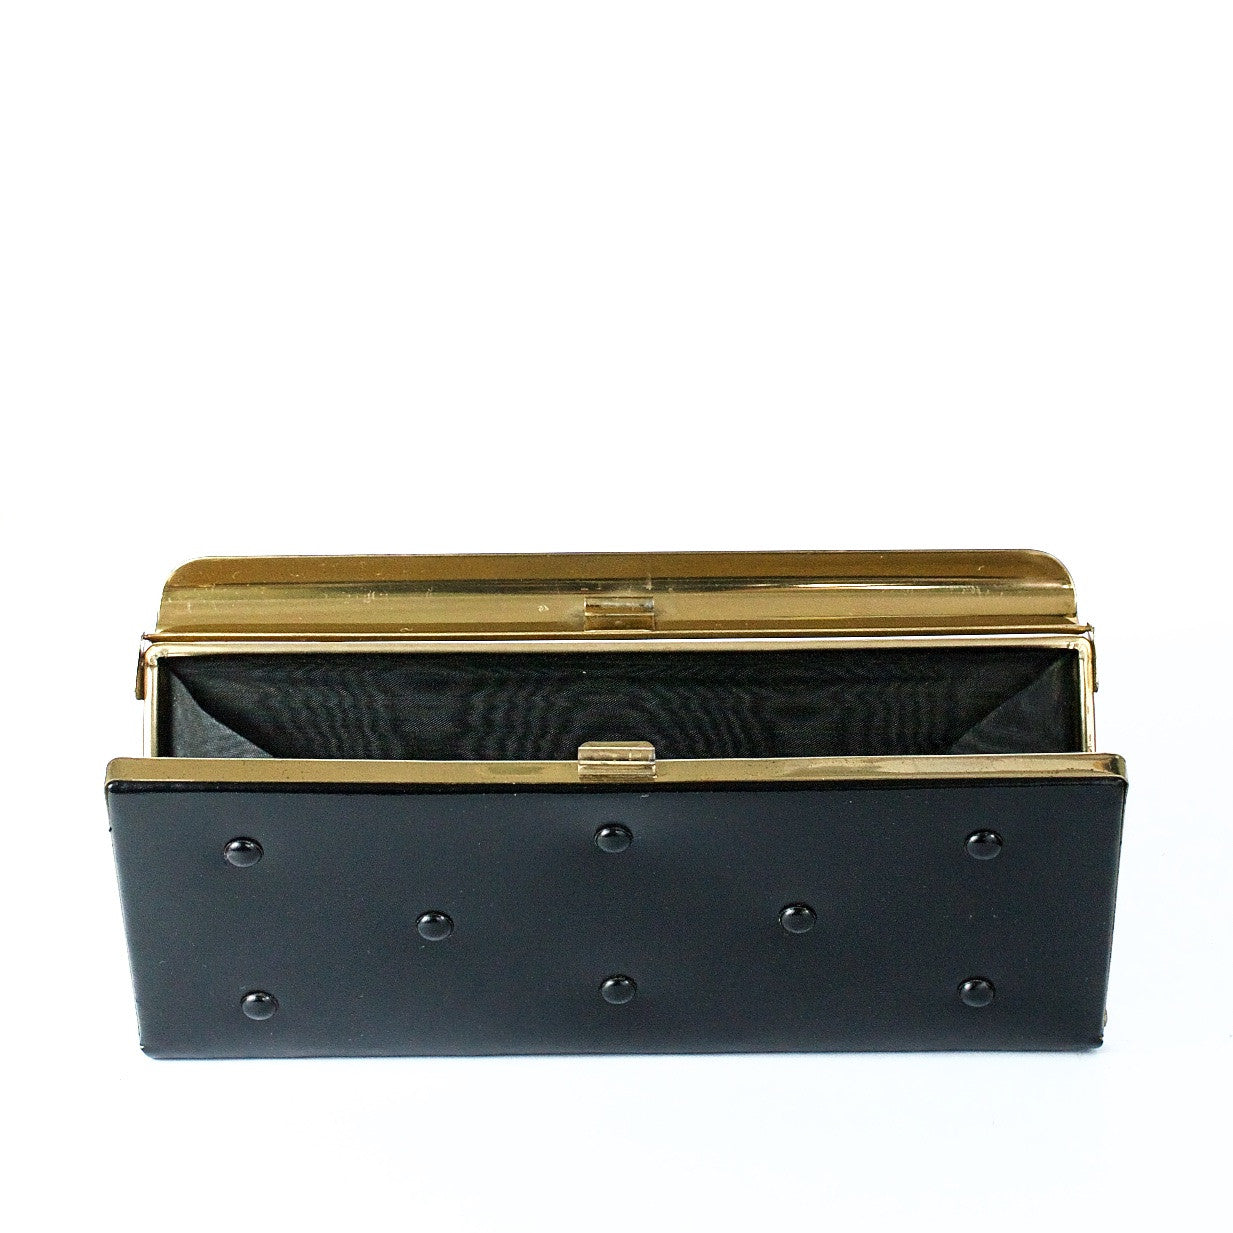 Vintage black studded clutch bag